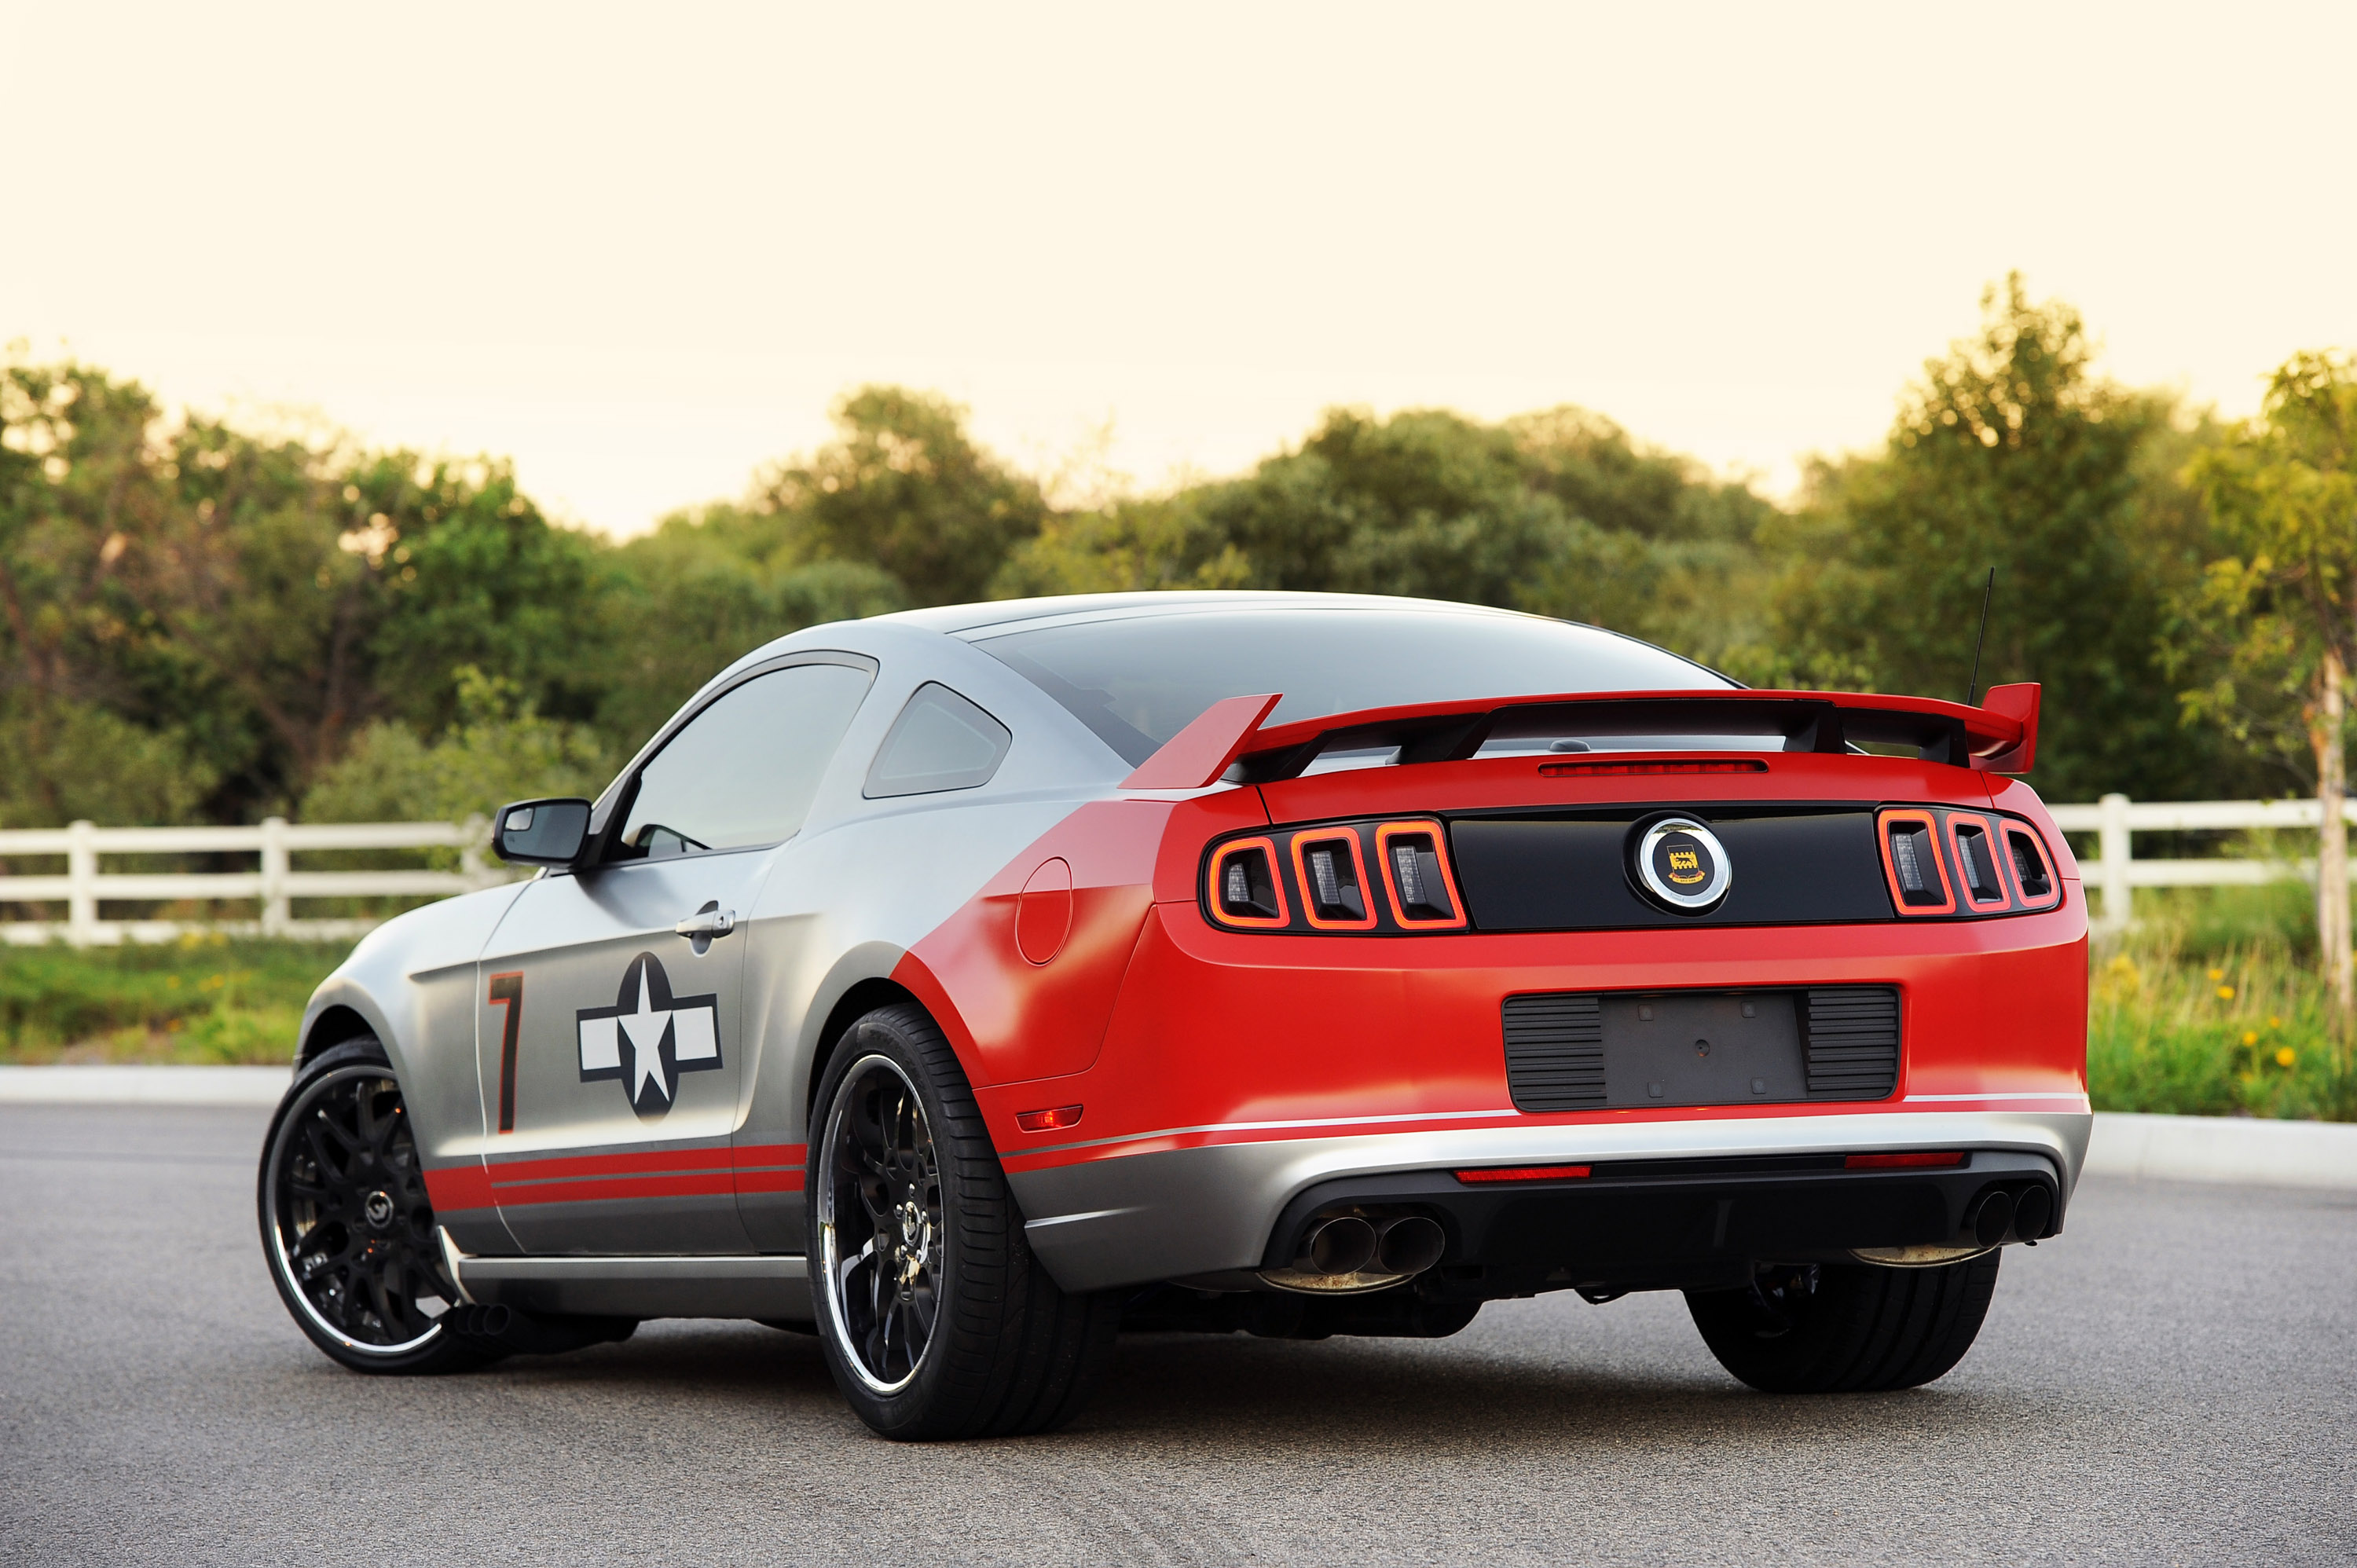 Citroen cruise crosser concept 2007 hd pictures ford mustang red tails gt edition vanachro Gallery